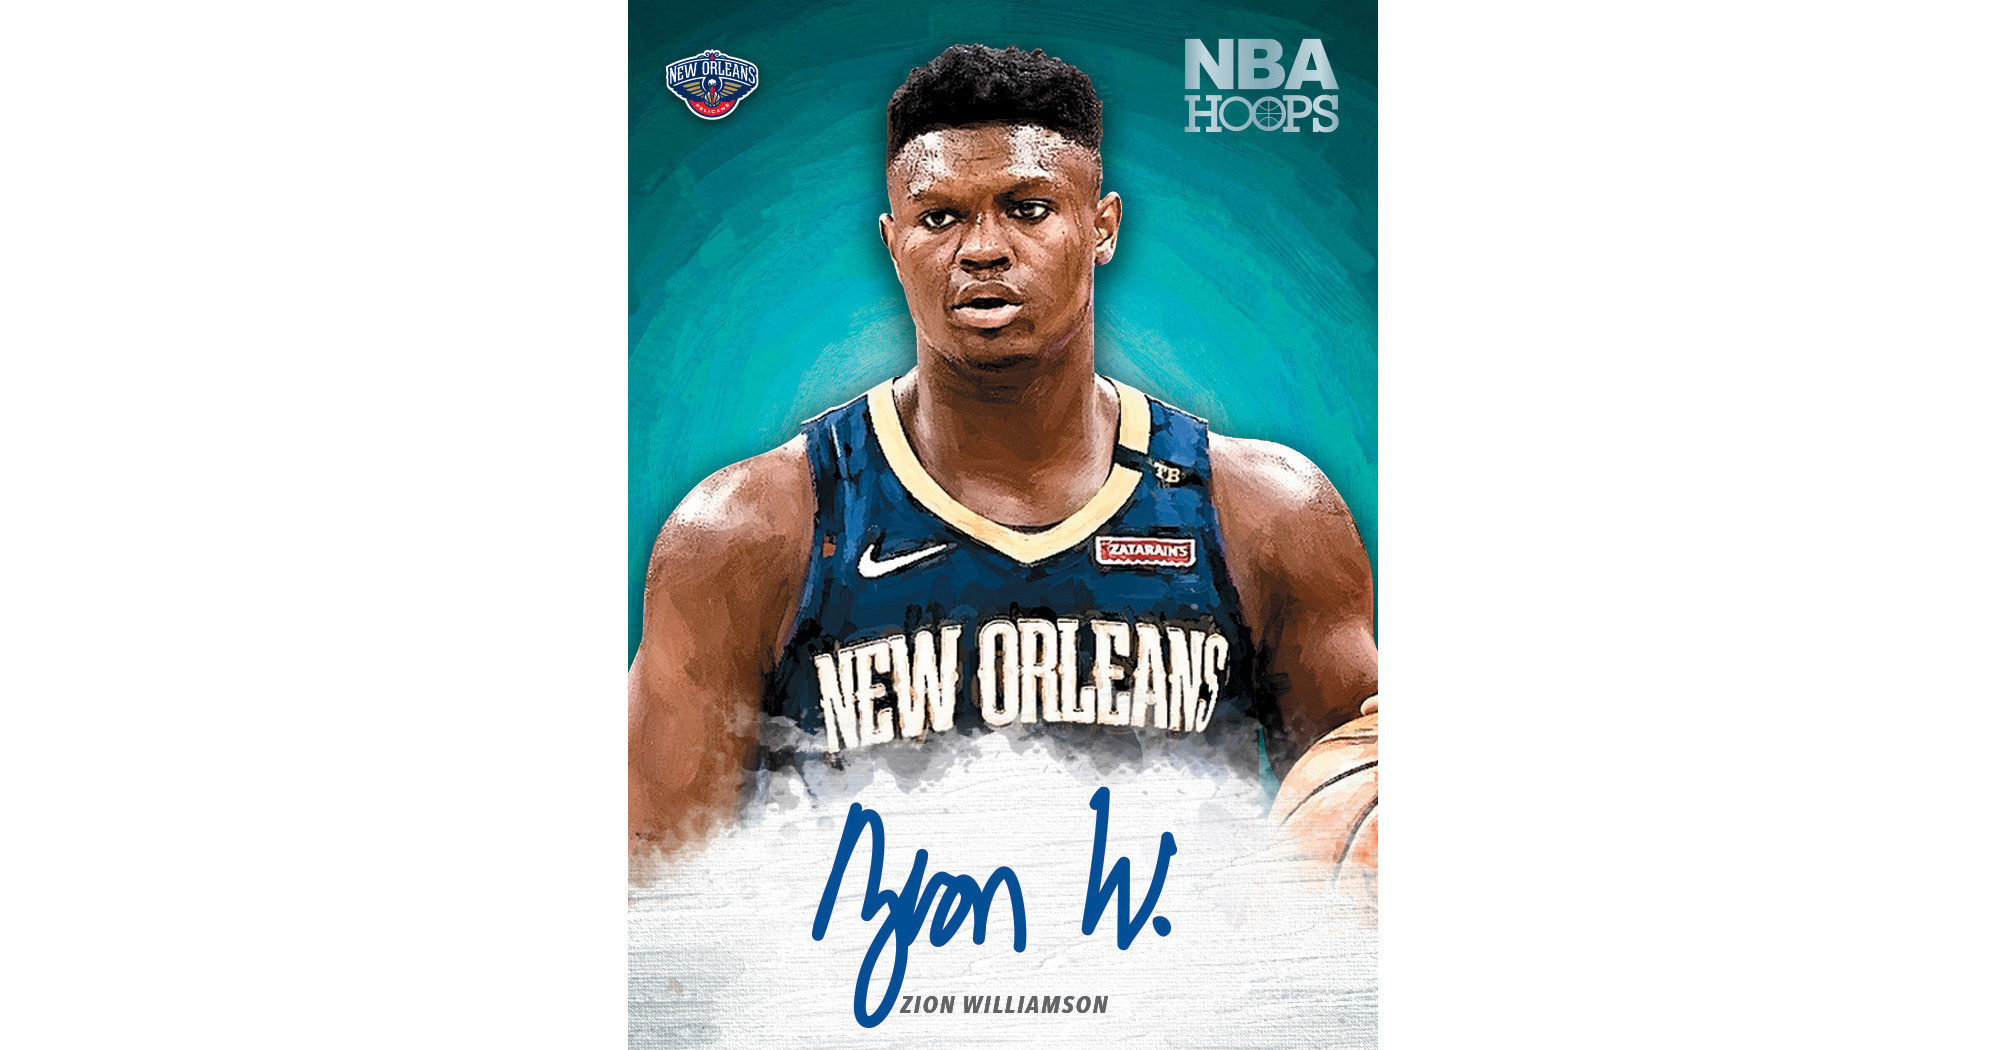 Panini America Signs Zion Williamson For Exclusive Trading